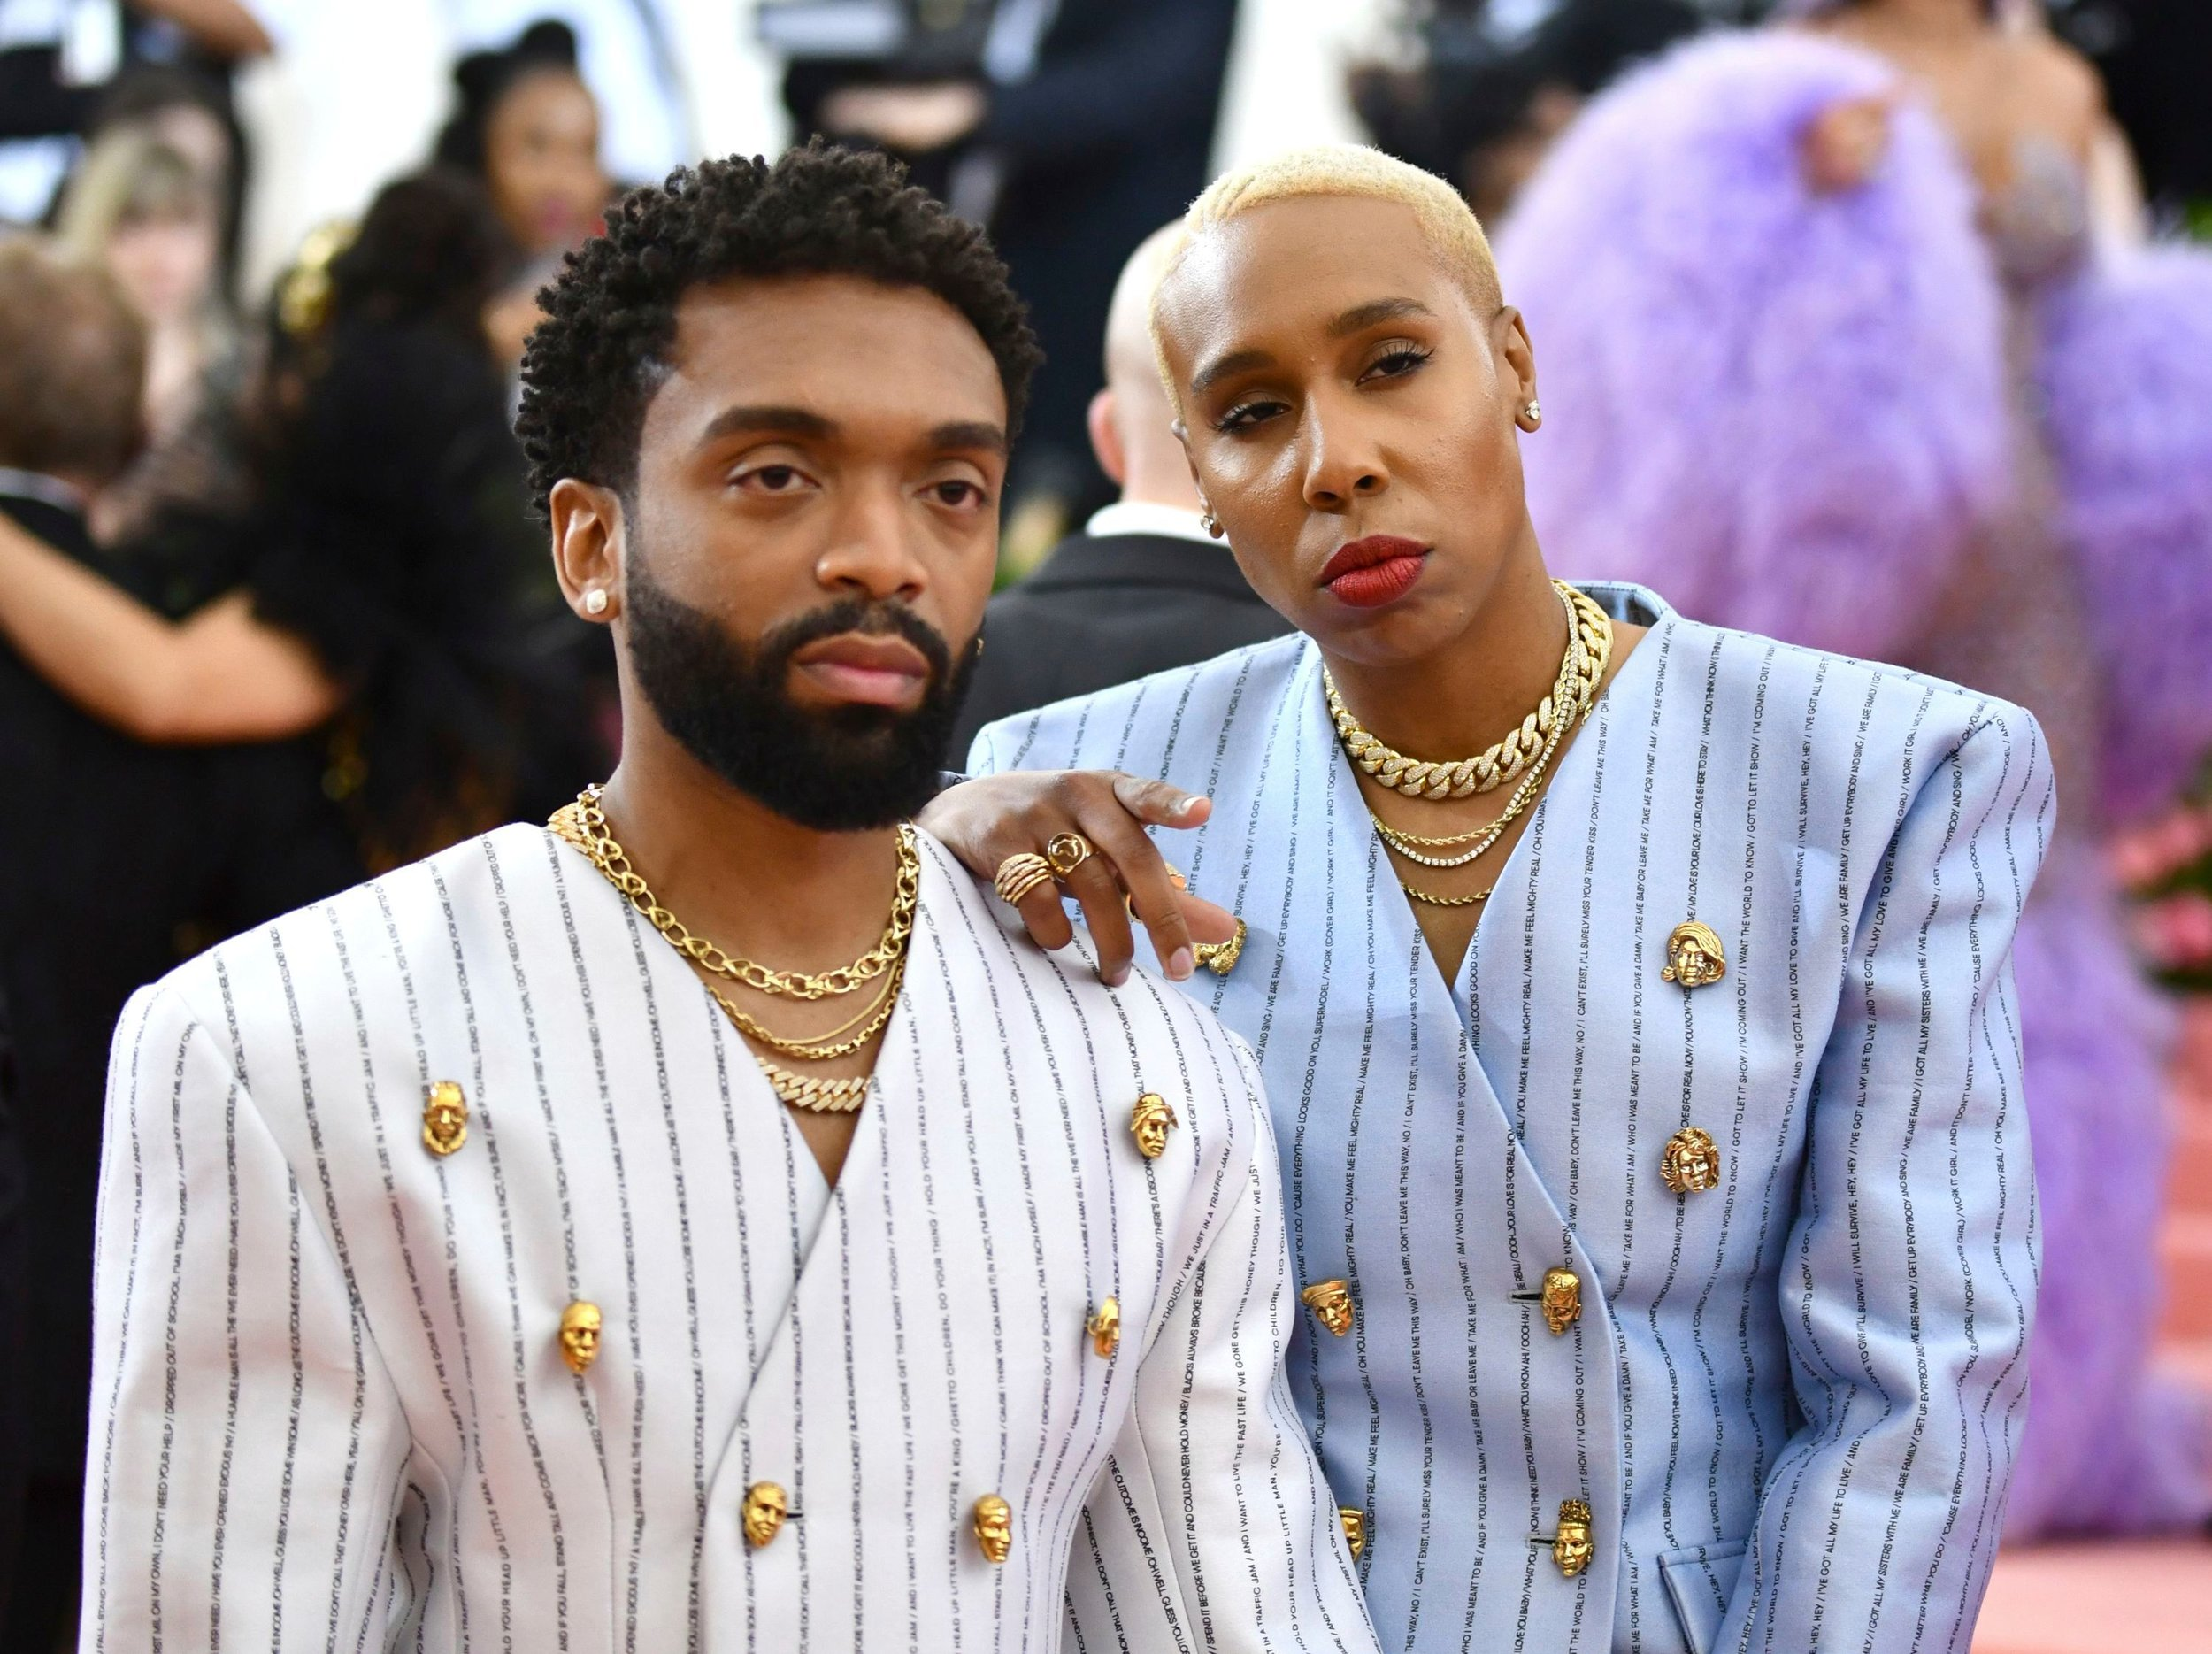 Kerby Jean-Raymond and Lena Waithe in Custom Pyer Moss